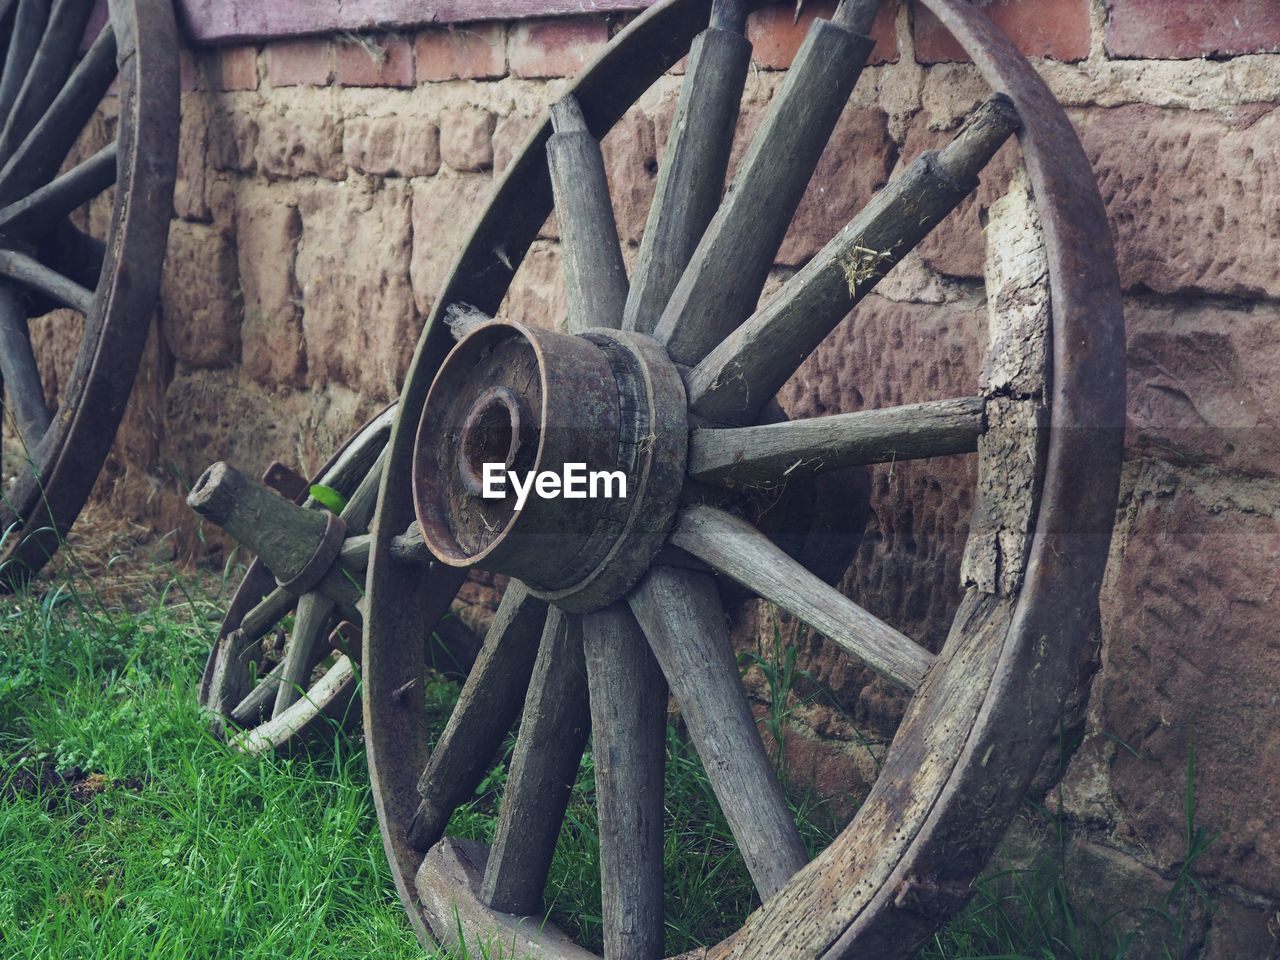 wheel, old, wagon wheel, no people, day, transportation, cart, metal, wood - material, obsolete, field, abandoned, rusty, outdoors, run-down, grass, nature, damaged, decline, deterioration, spoke